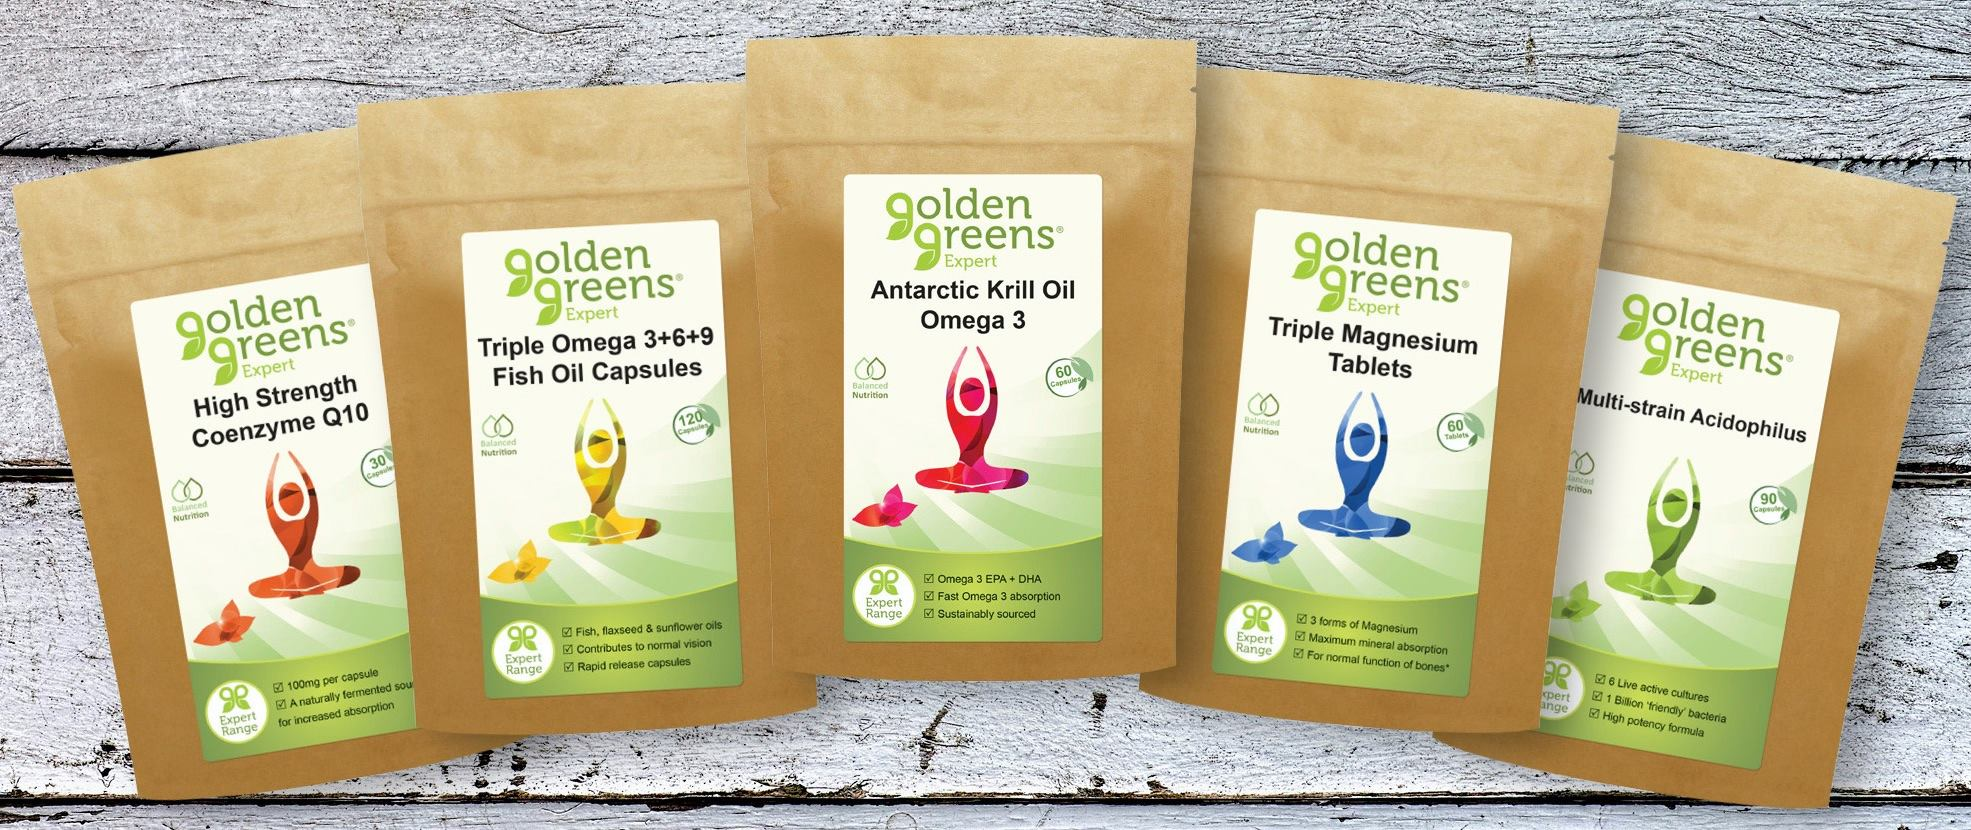 Golden Greens Products